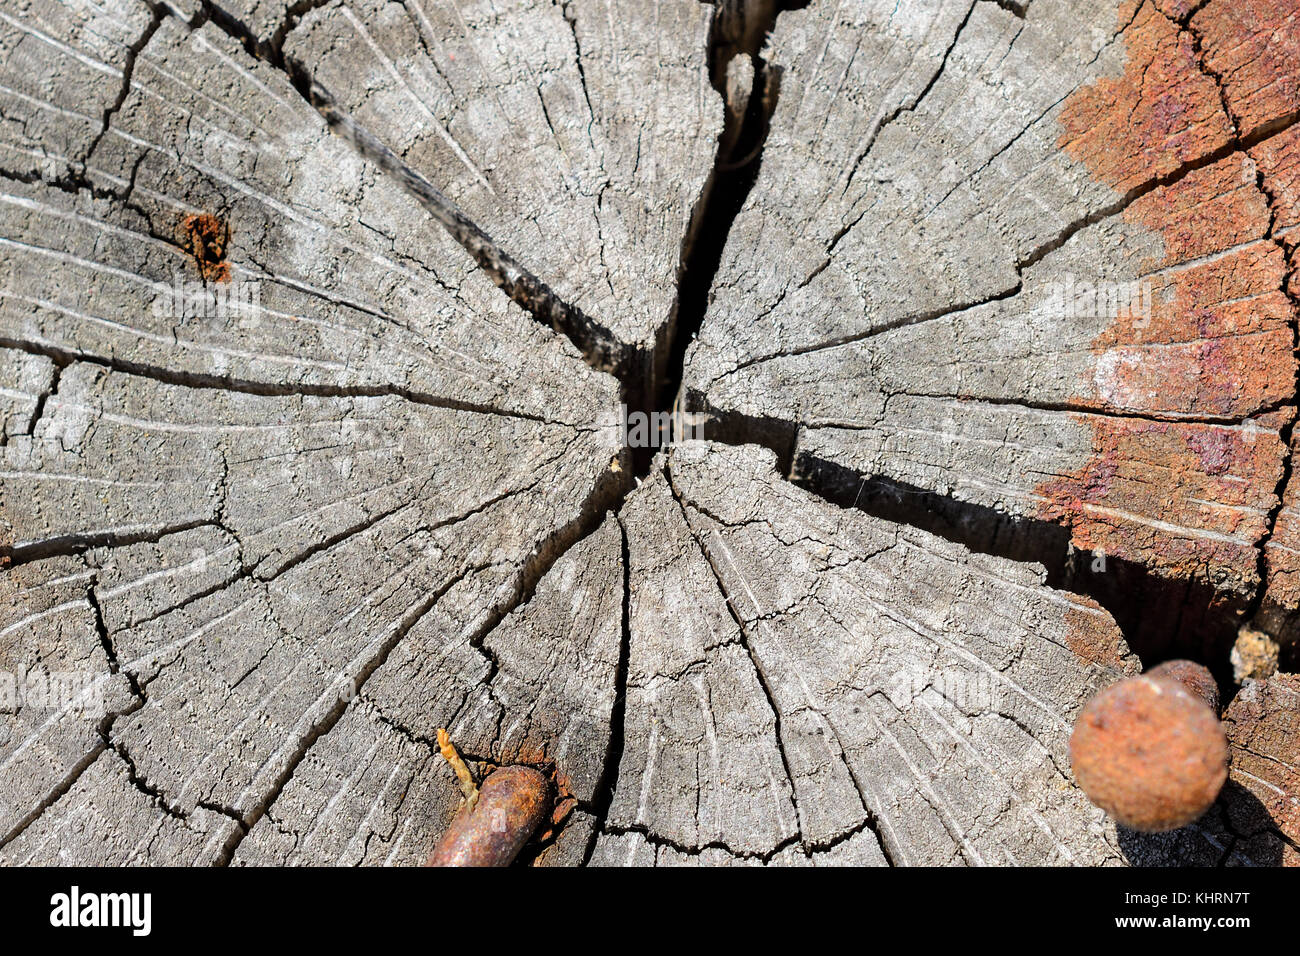 Close-Up Of Growth Rings And Radial Splits On The End Of A Log With Rusty Nails Stock Photo